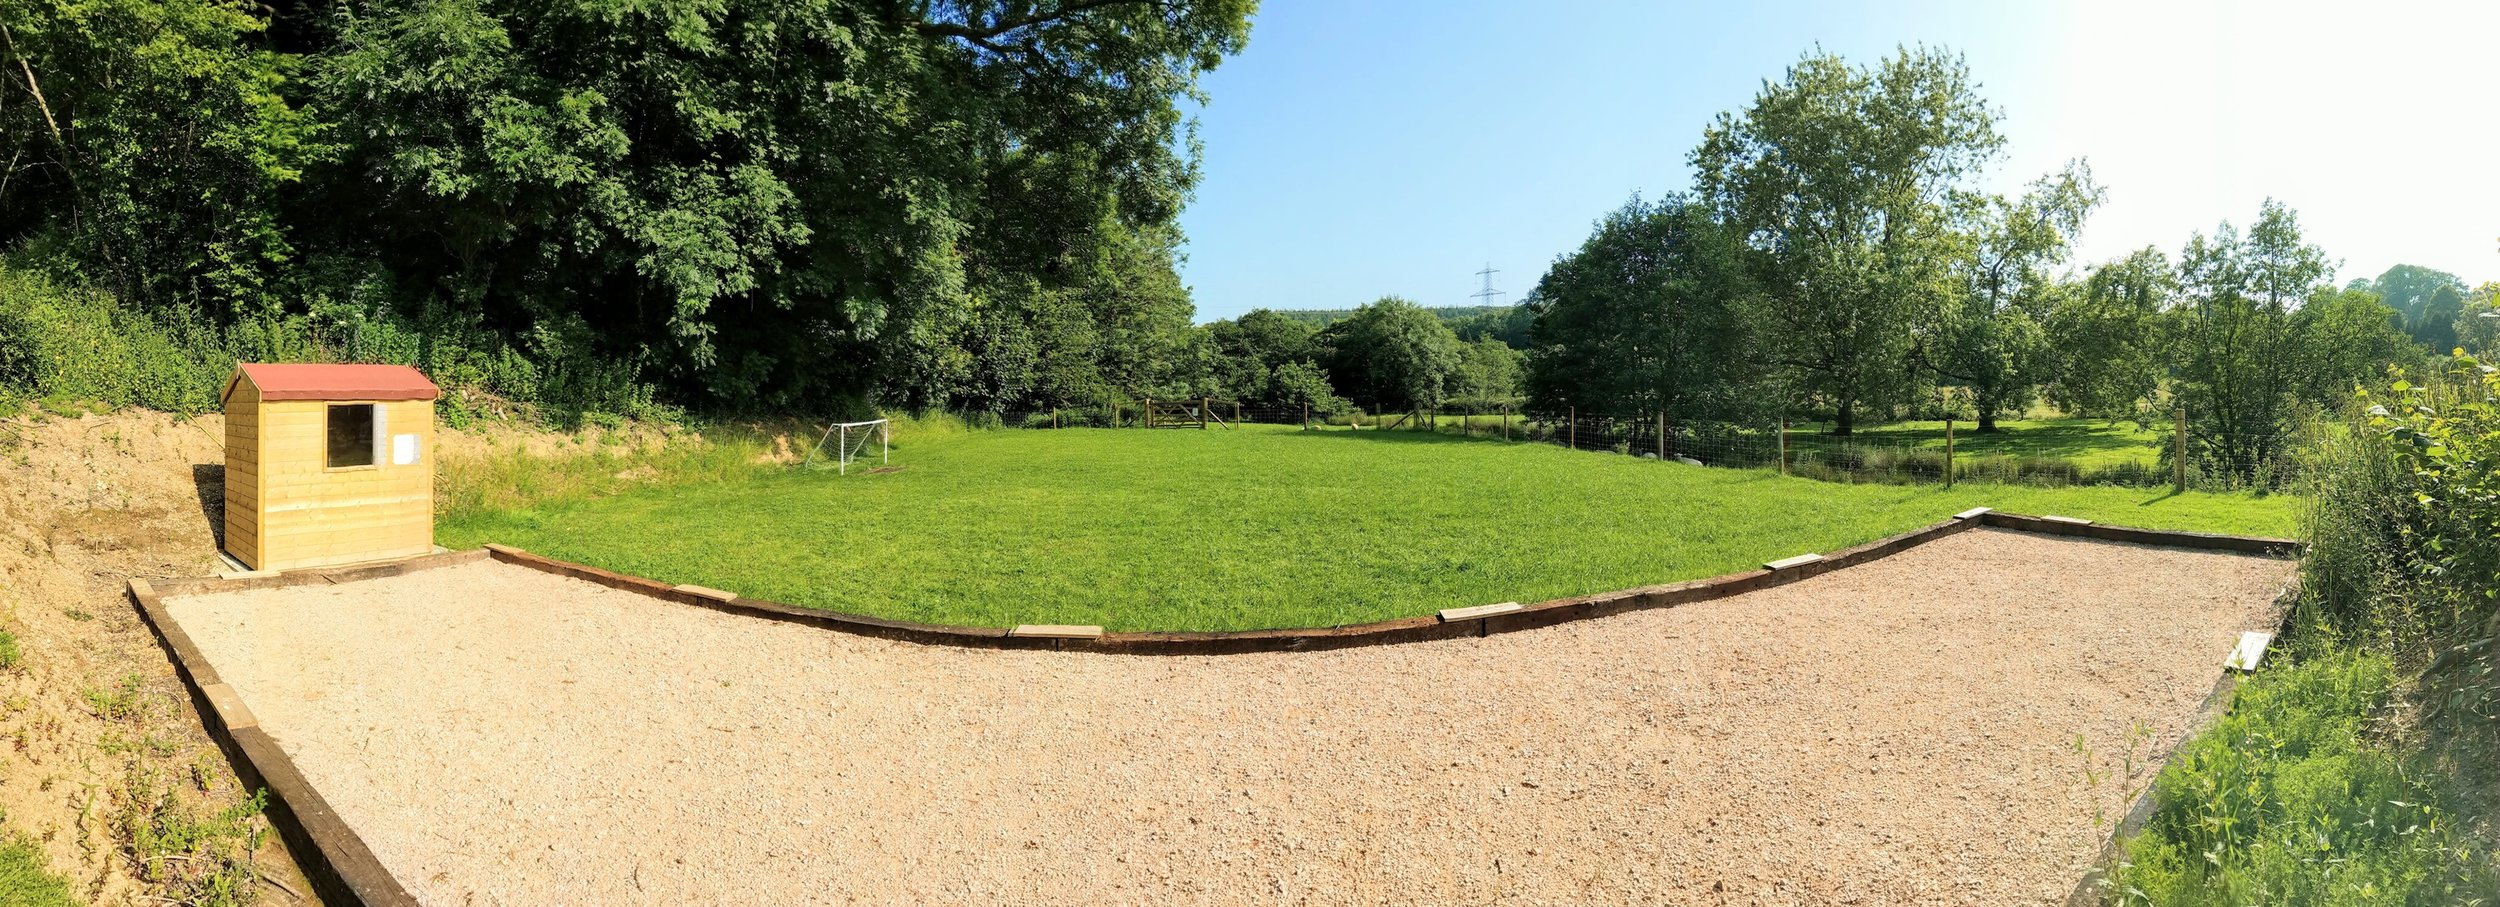 (Boules court not actually curved in real life!)